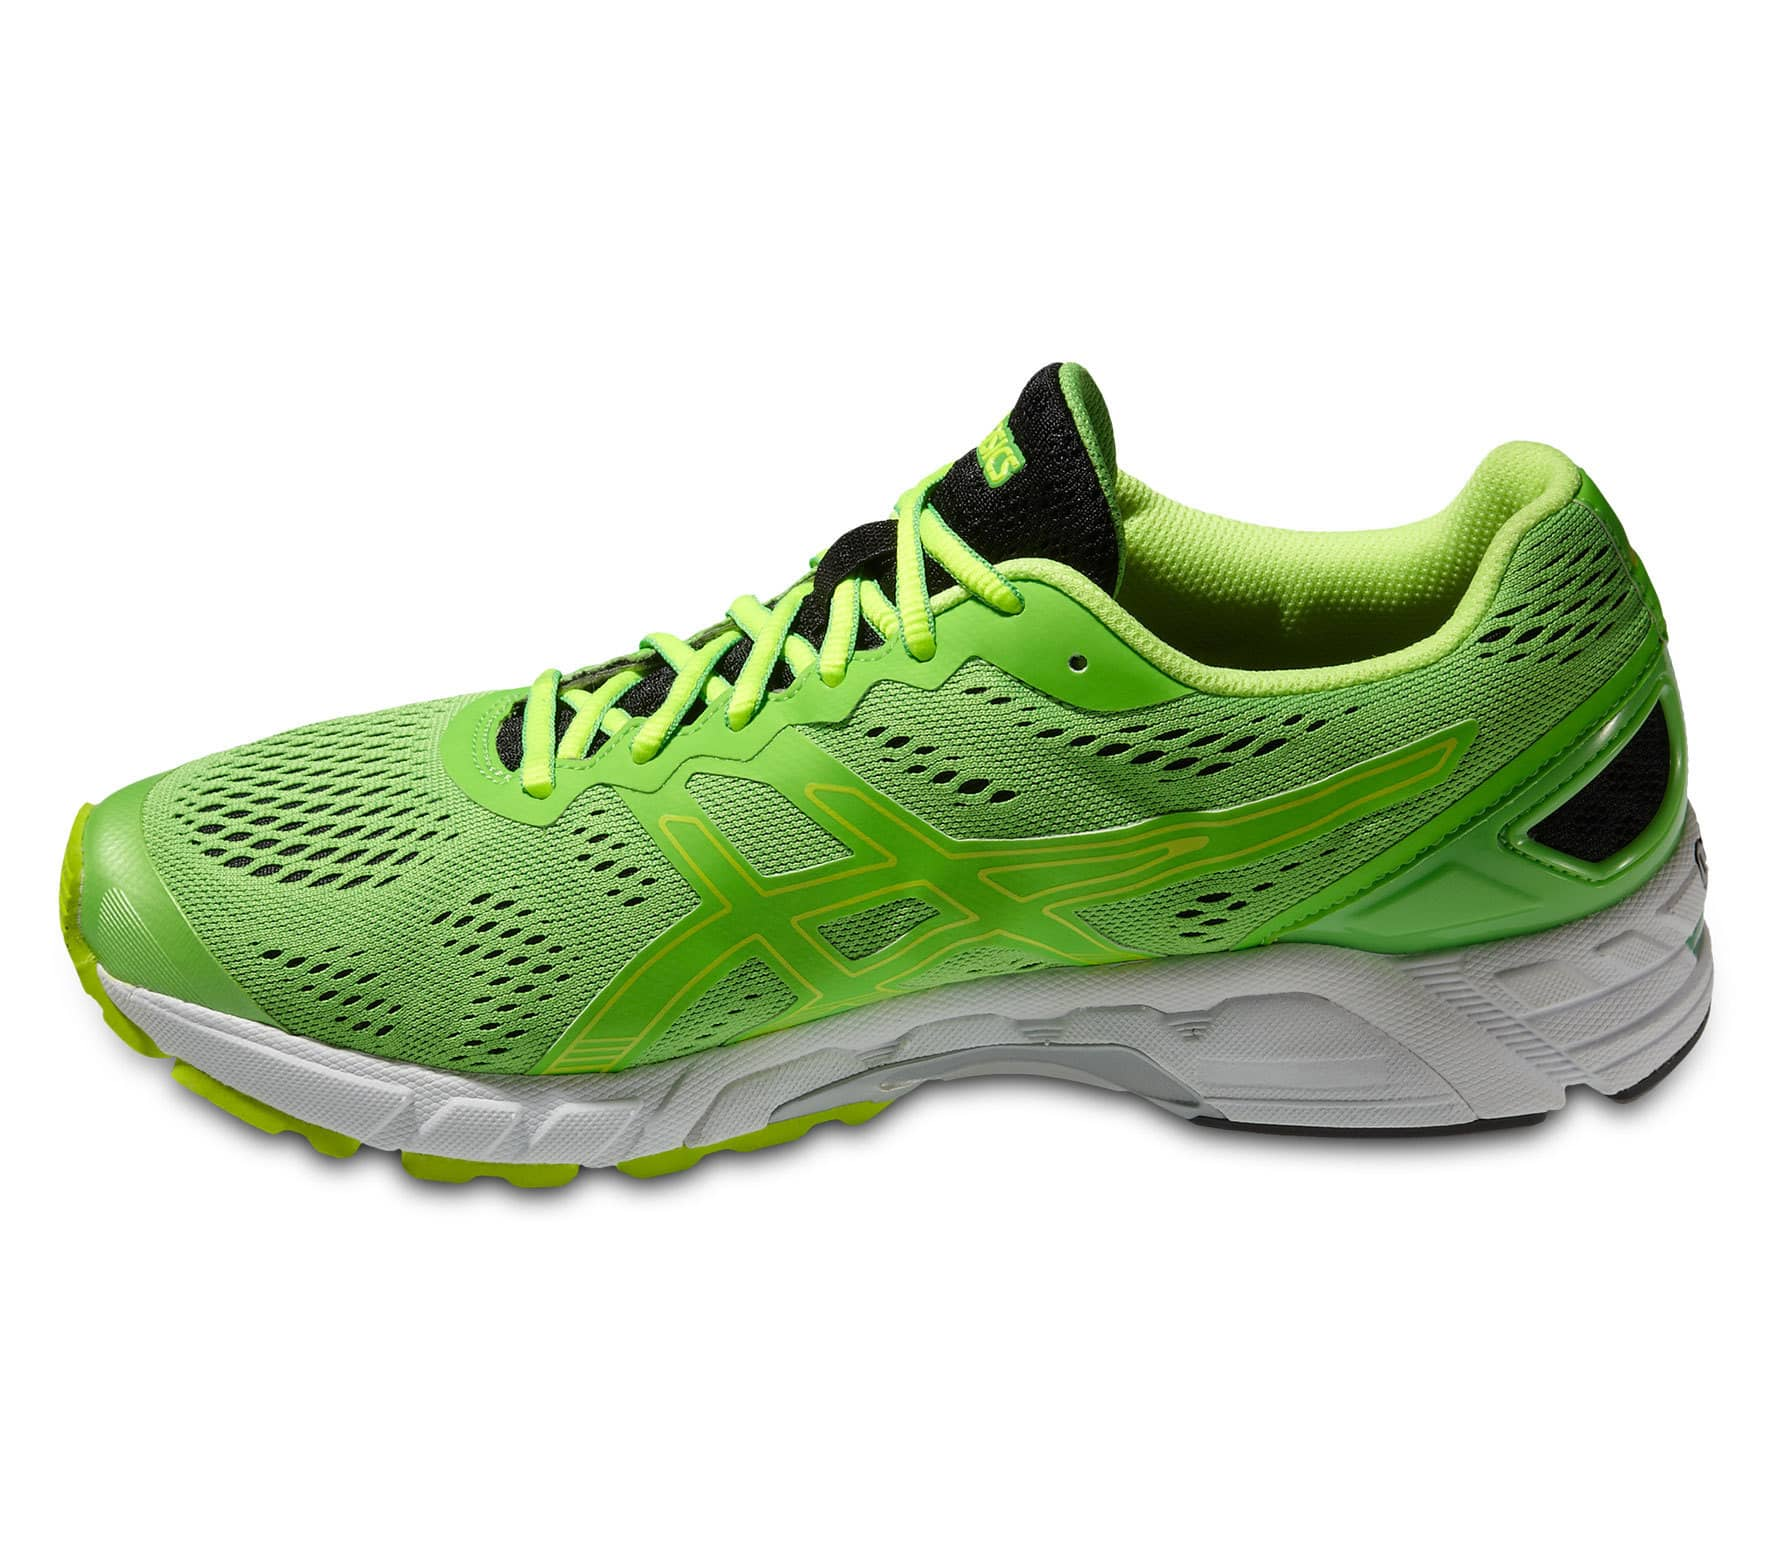 official photos c2ee4 dad3d ASICS - Gel-DS Trainer 19 Neutral men running shoes (green/white)